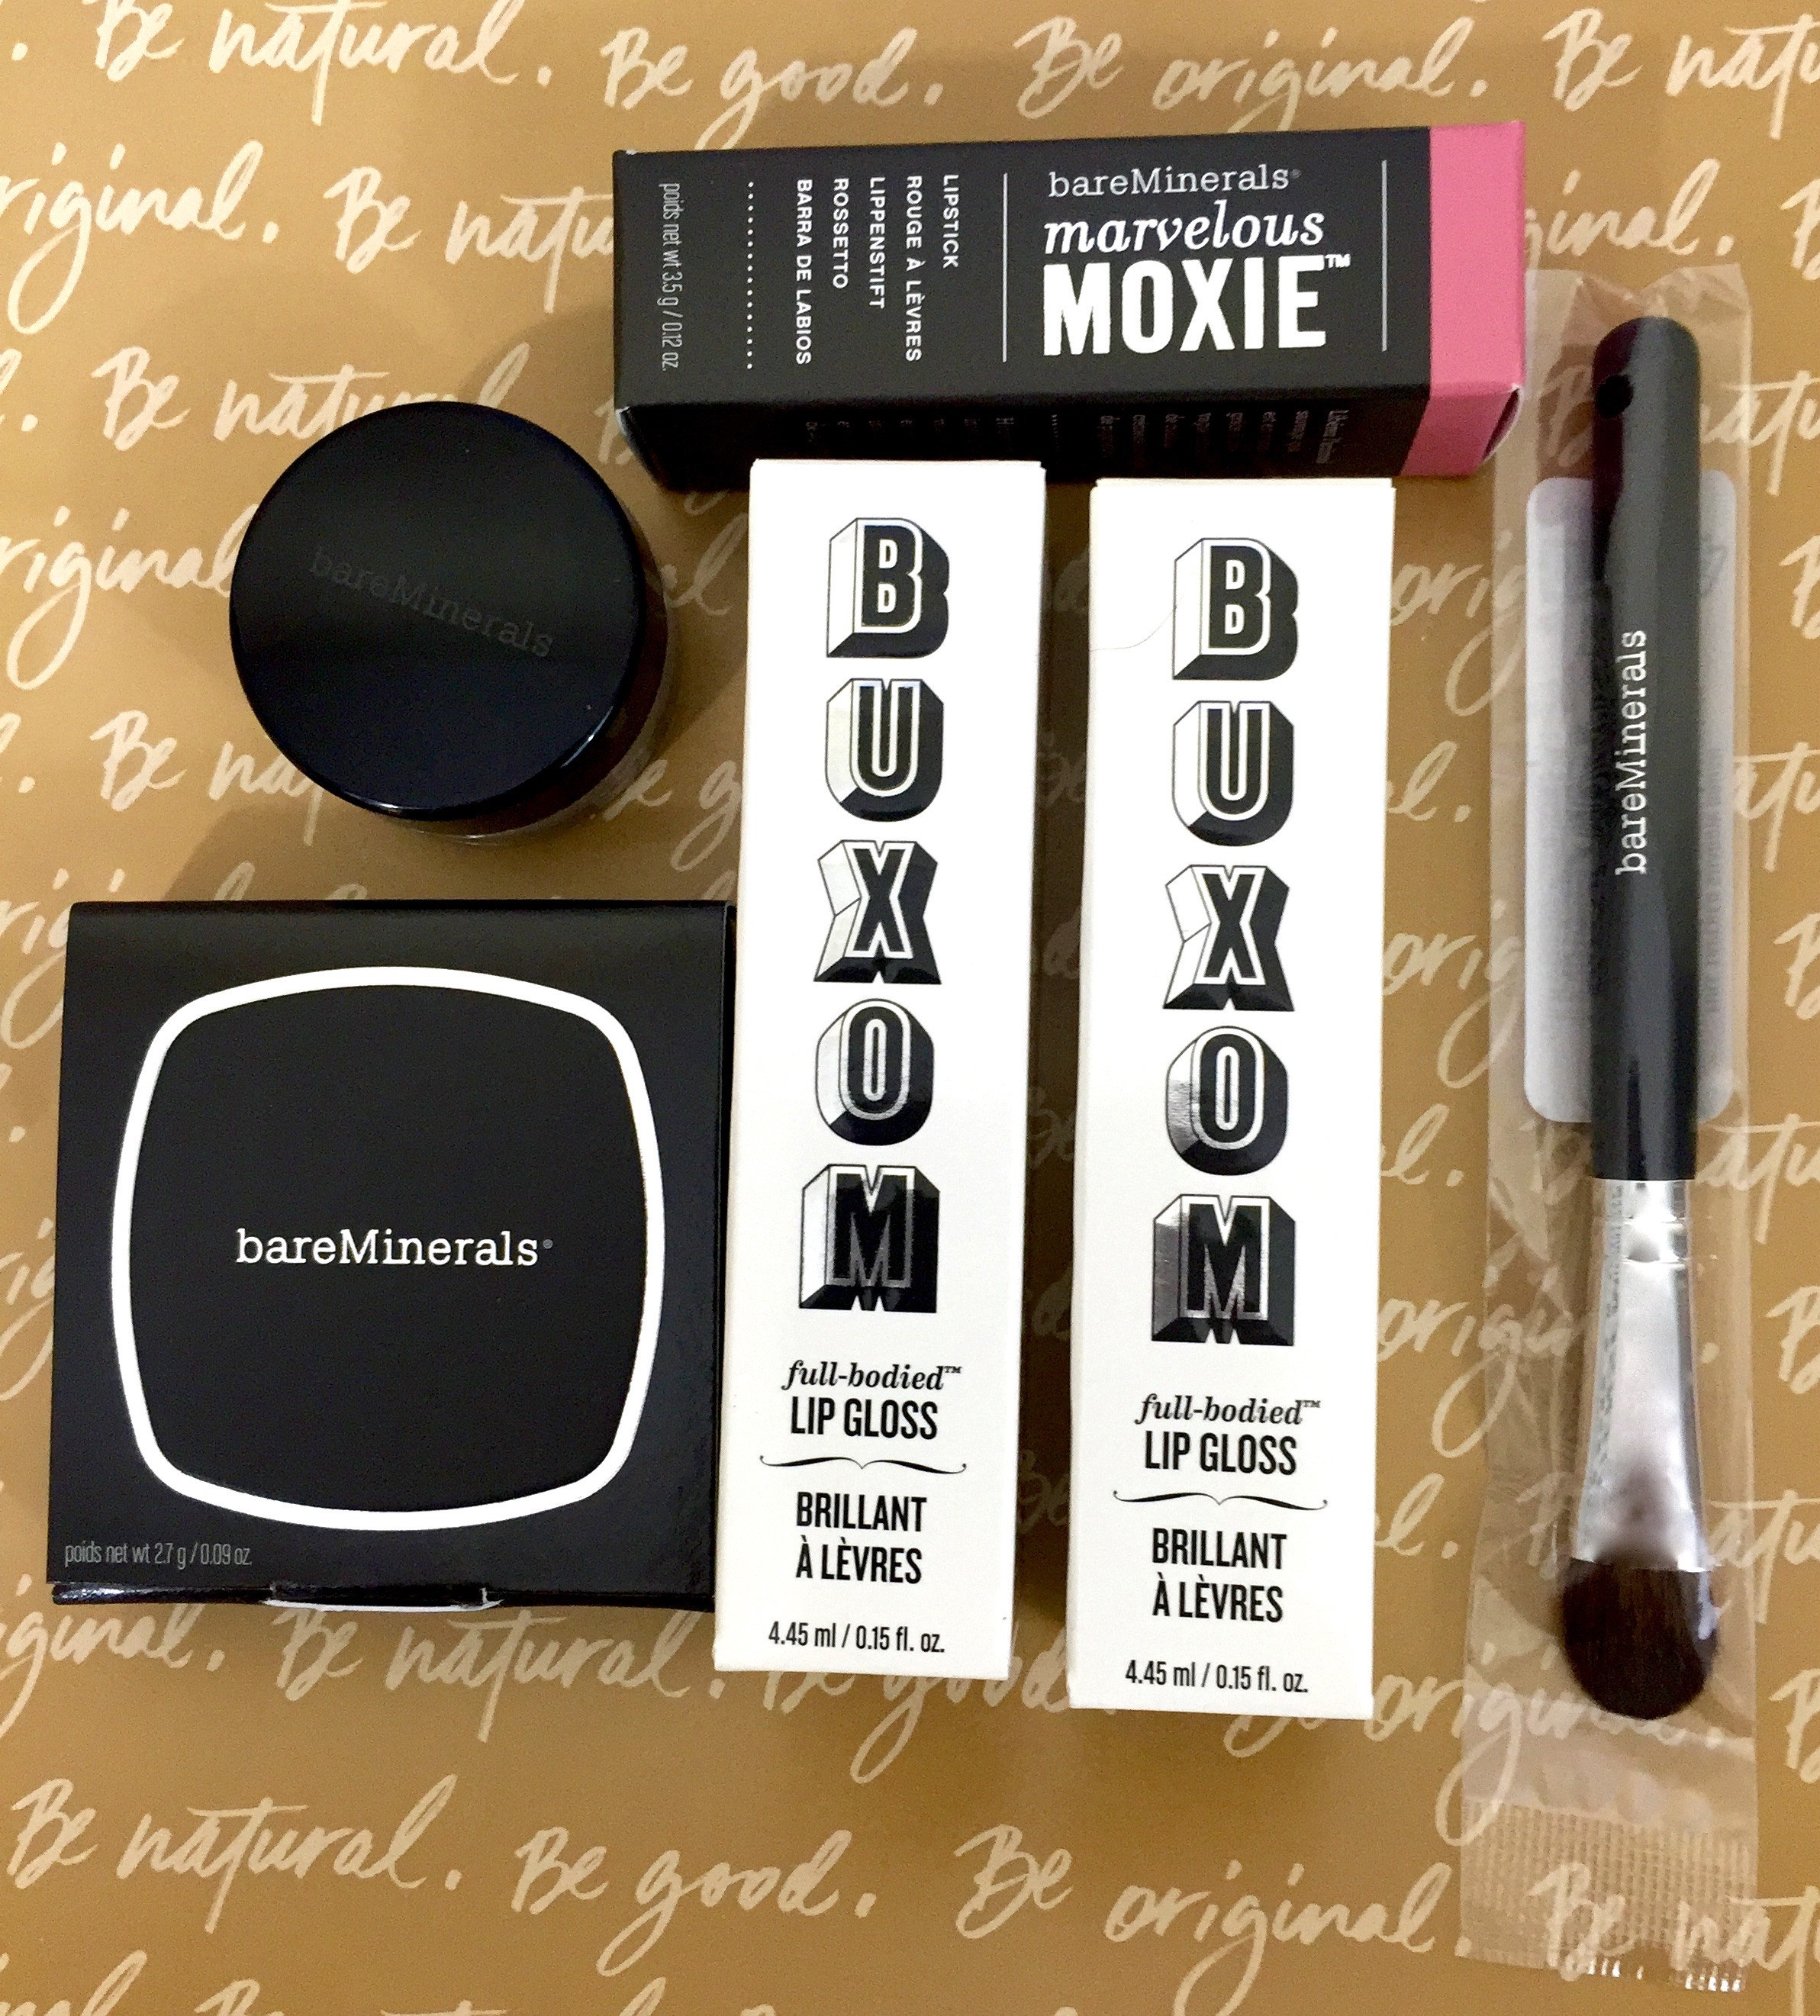 September 2016 bareMinerals 6-Piece Mystery Box Review | The Homespun Chics